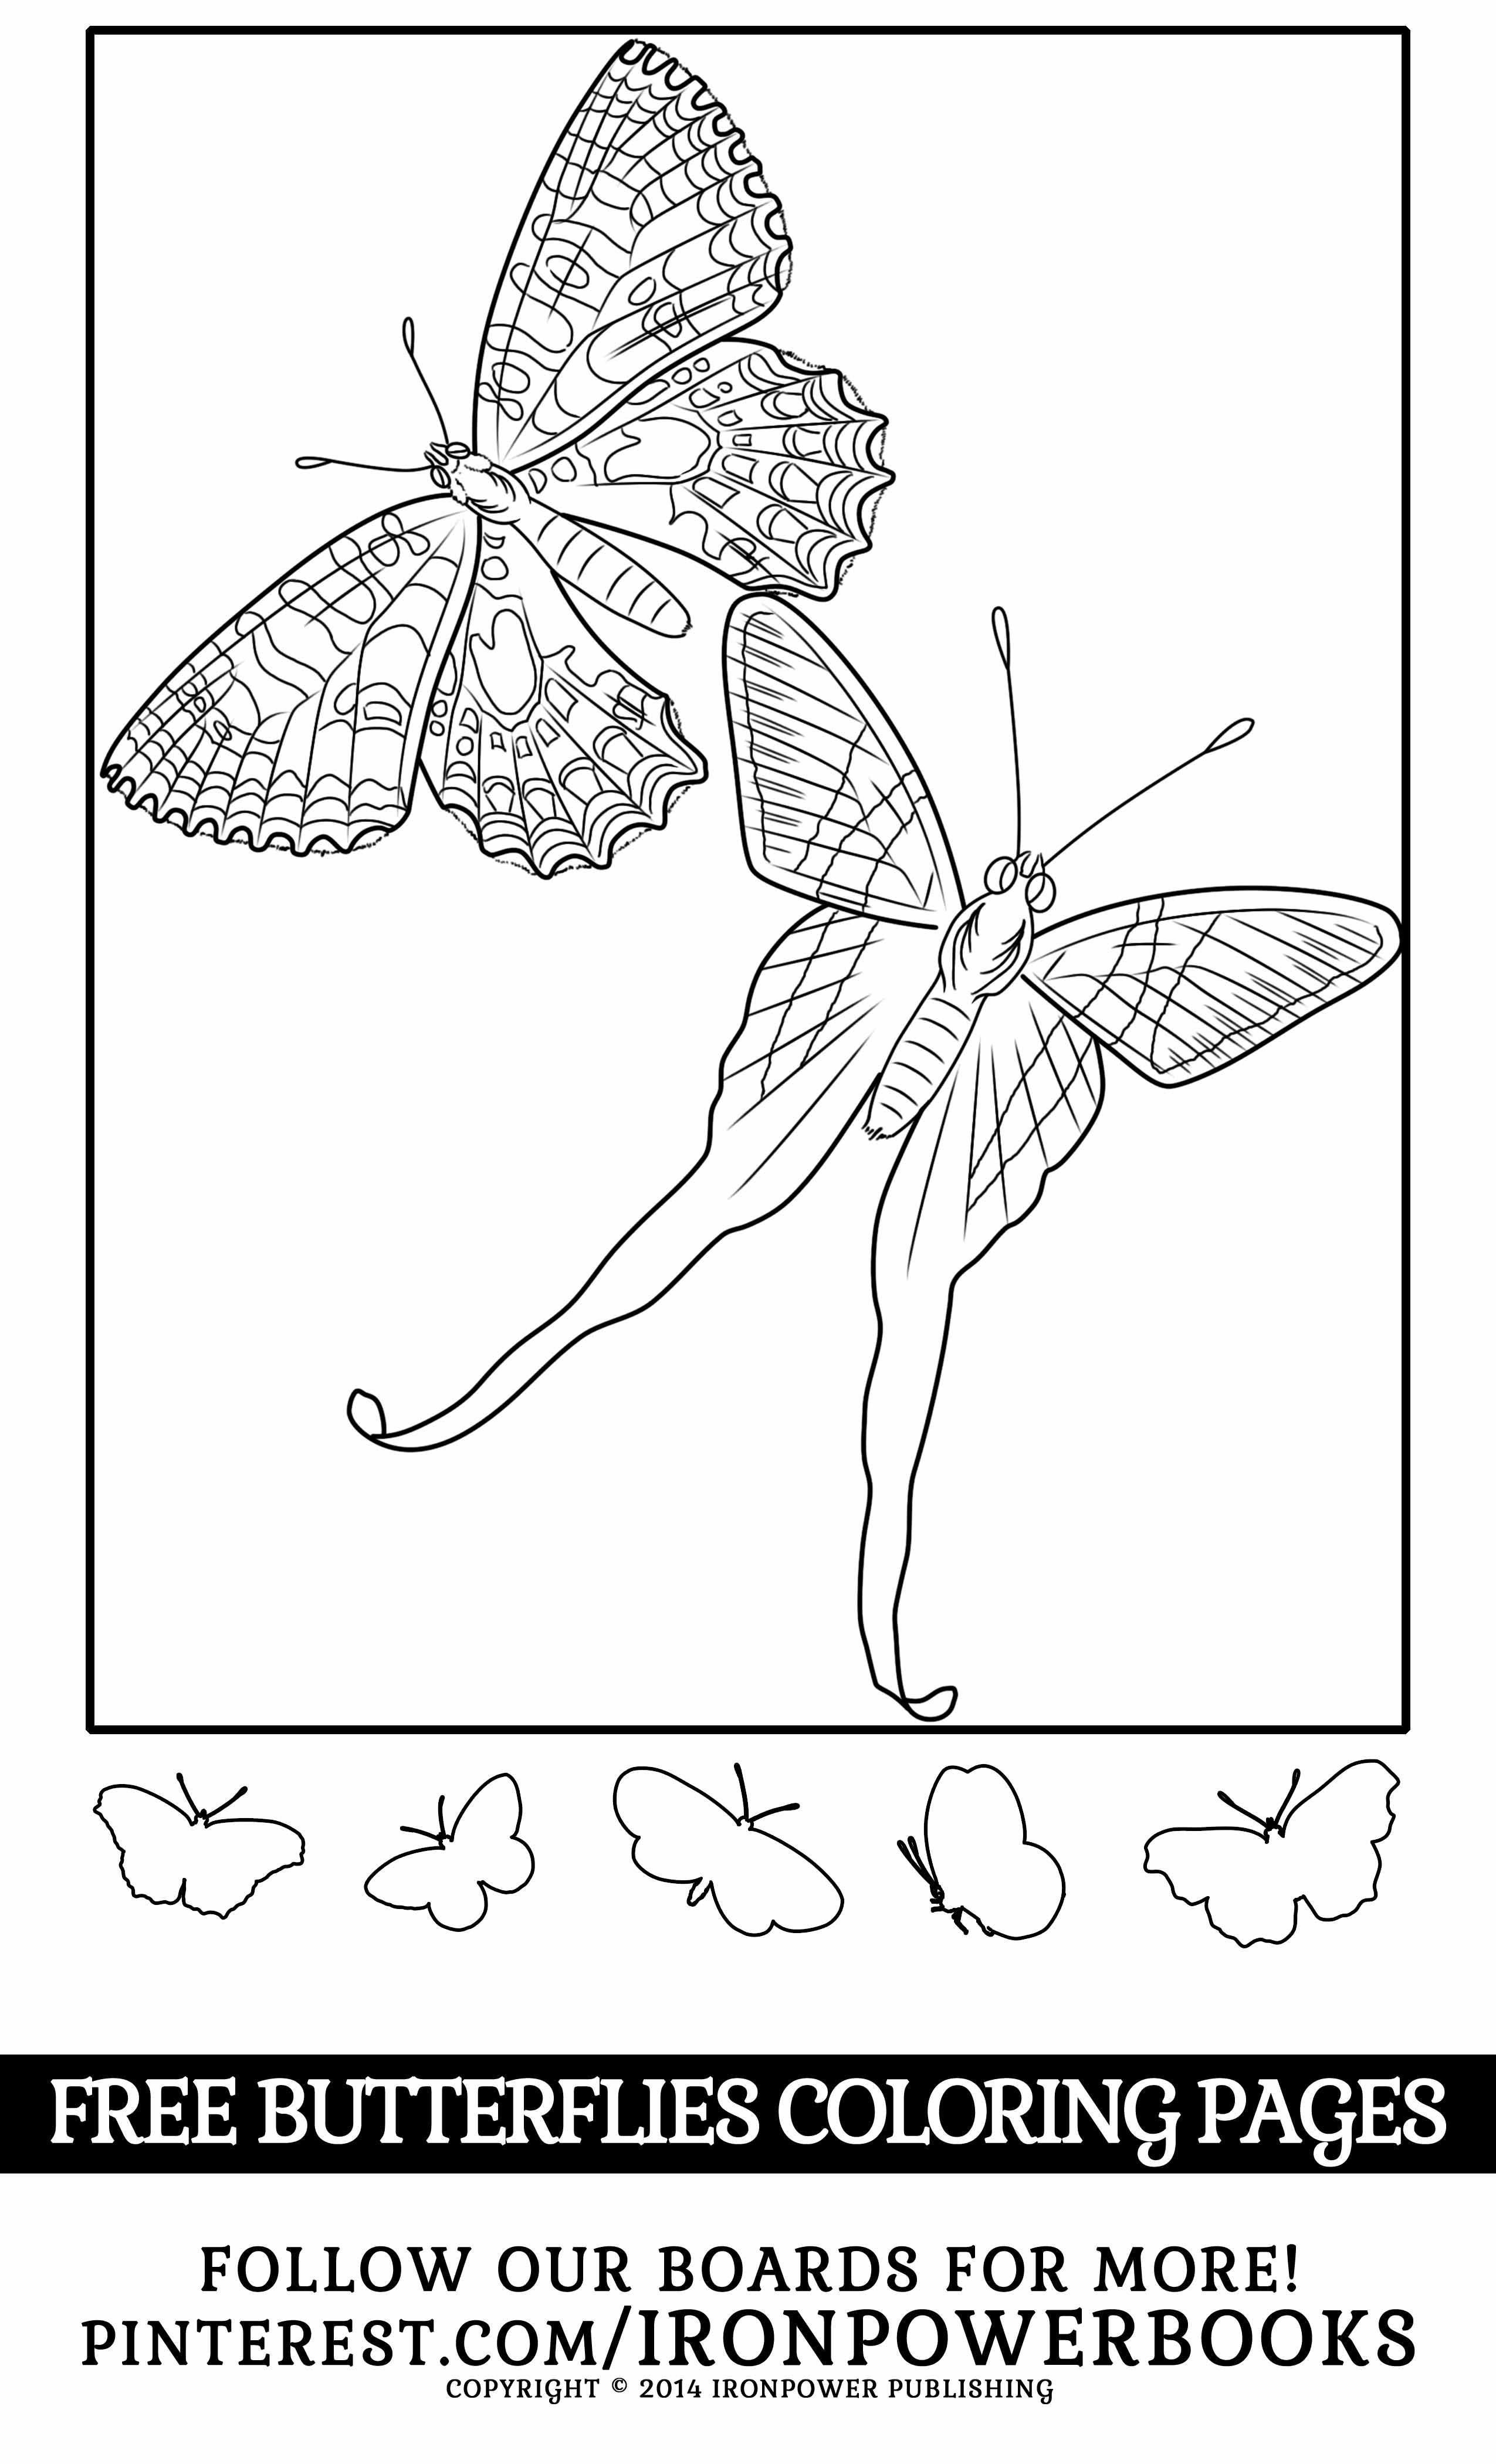 Printable Butterfly Coloring Pages @ironpowerbooks | Very Detailed Butterfly  Illustrations/line Drawings To Color